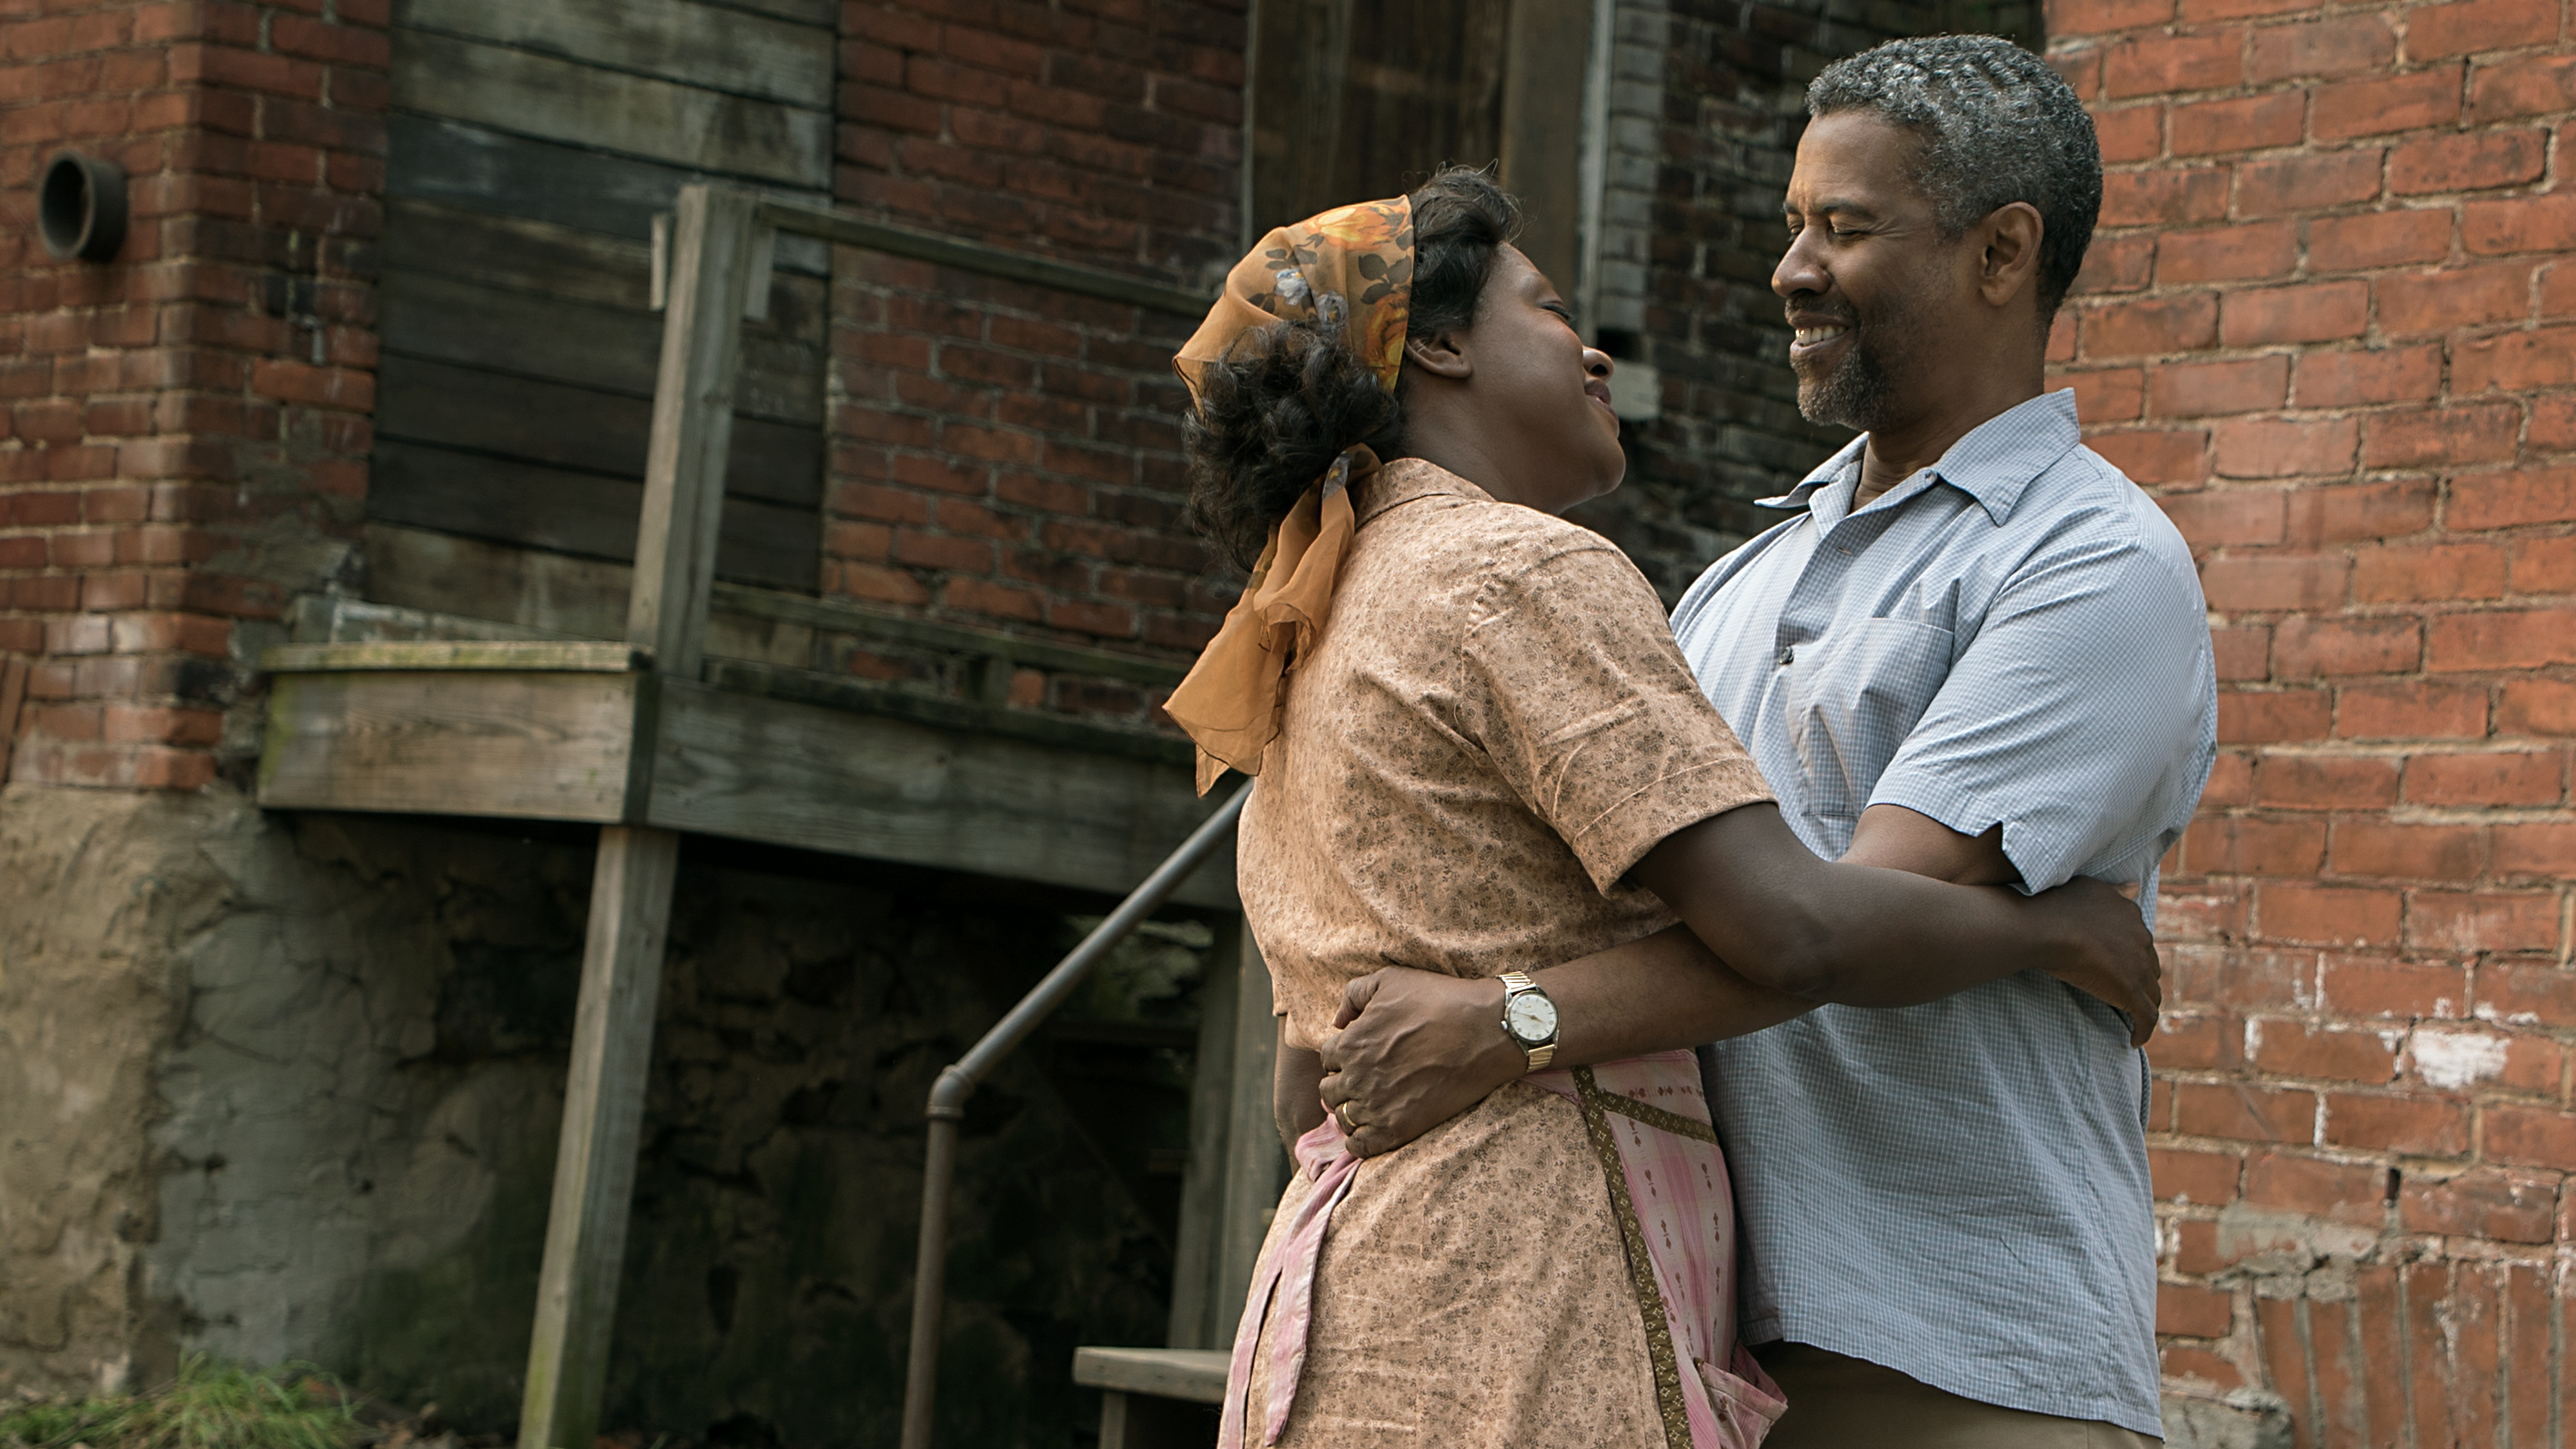 """Denzel Washington says his character, Troy, """"thinks he can control death and the devil, and he finds out in the worst way that he can't."""" Washingtonstars alongside Viola Davisin Fences</em"""